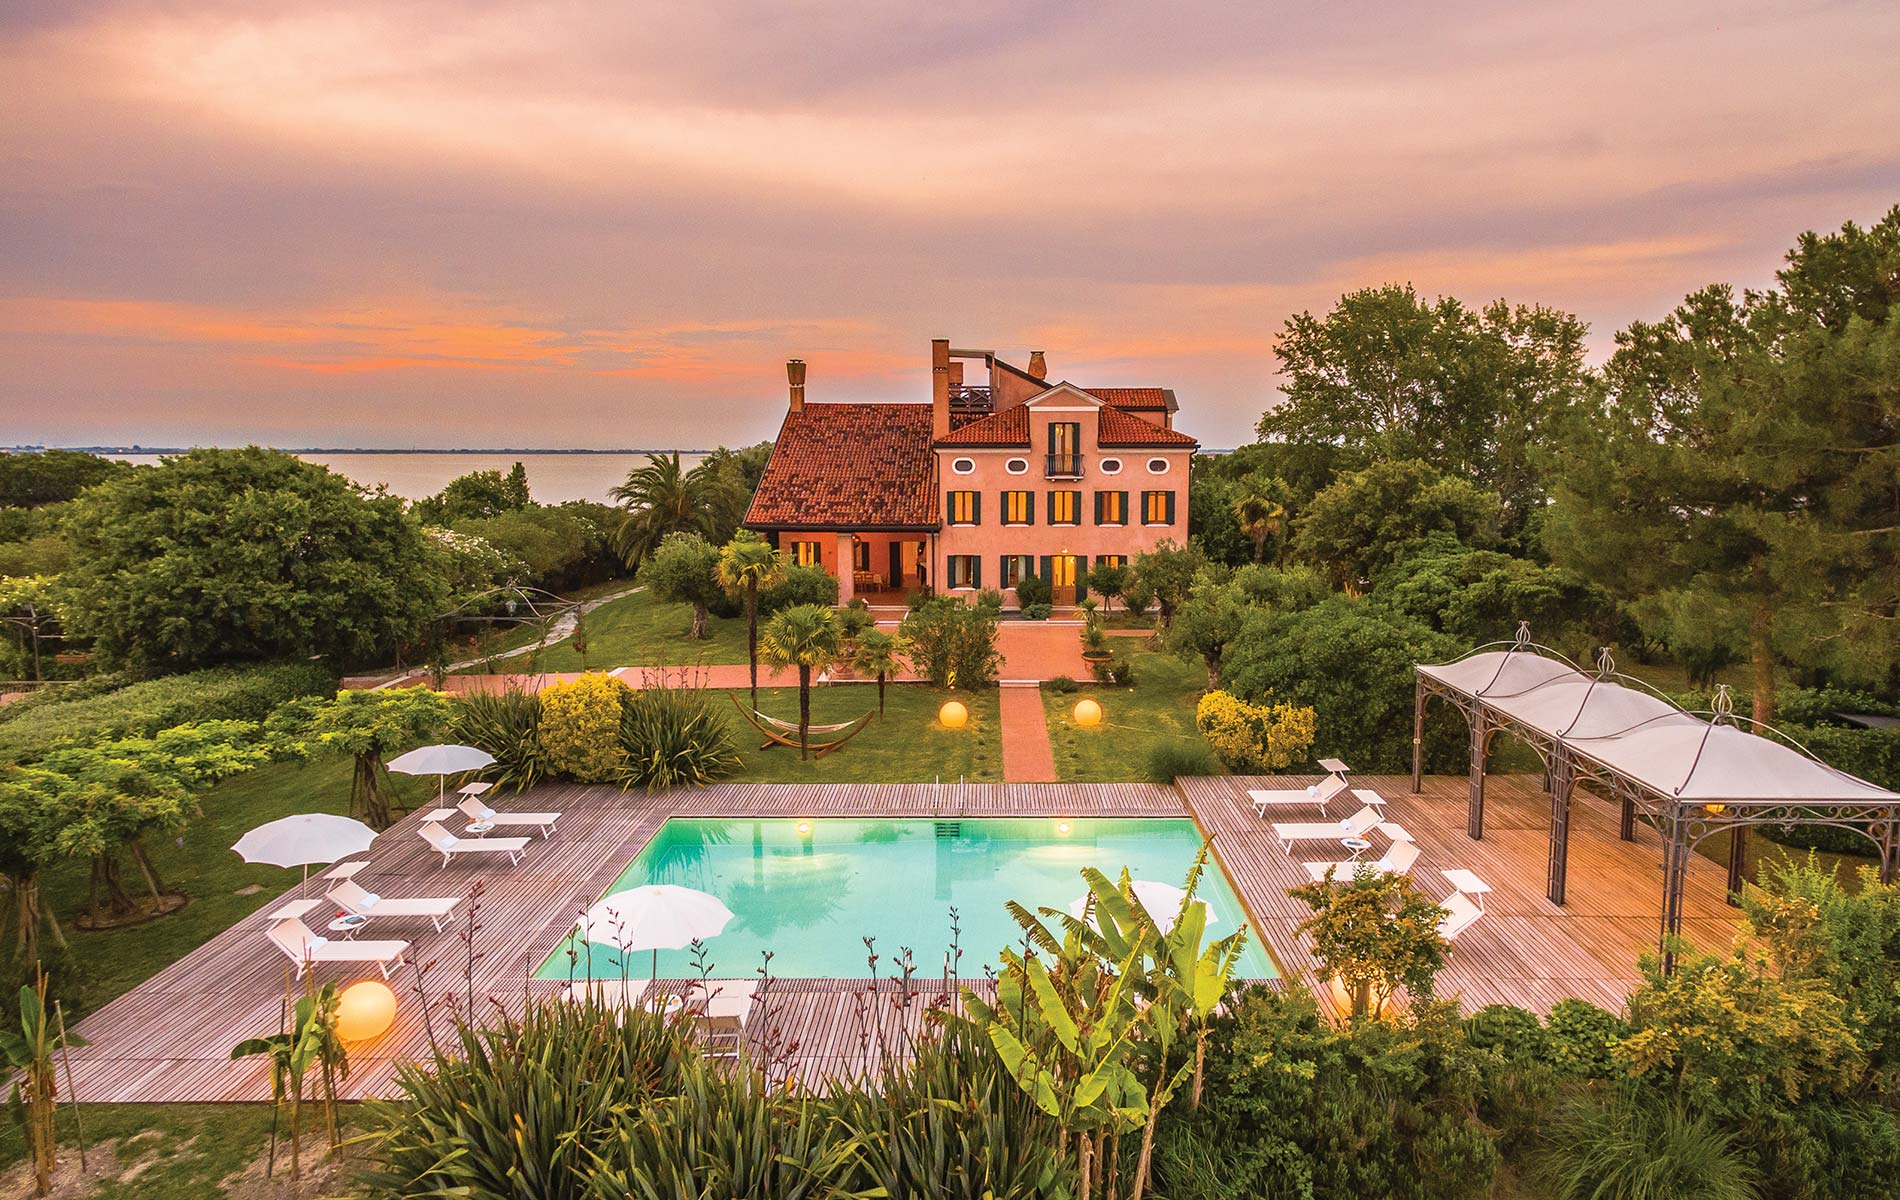 The 1920s Villa Ammiana is now a beautiful and sustainable eco-lodge just a half-hour boat ride from Venice on the private island of Santa Cristina.